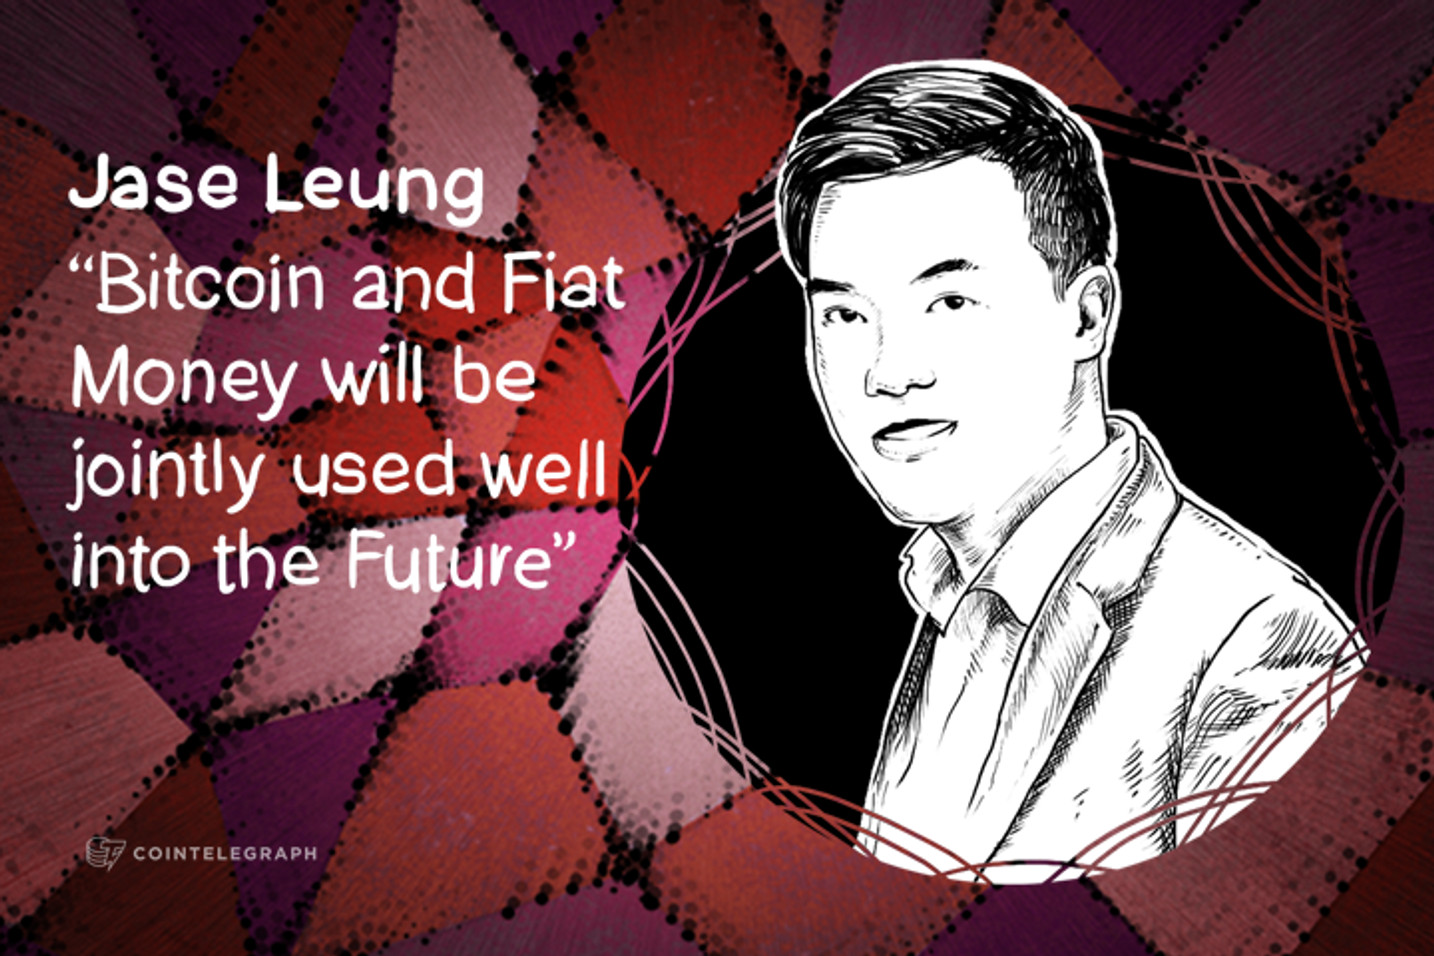 """""""Bitcoin and Fiat Money will be jointly used well into the Future"""" – Jase Leung, CEO Bitcoinnect"""